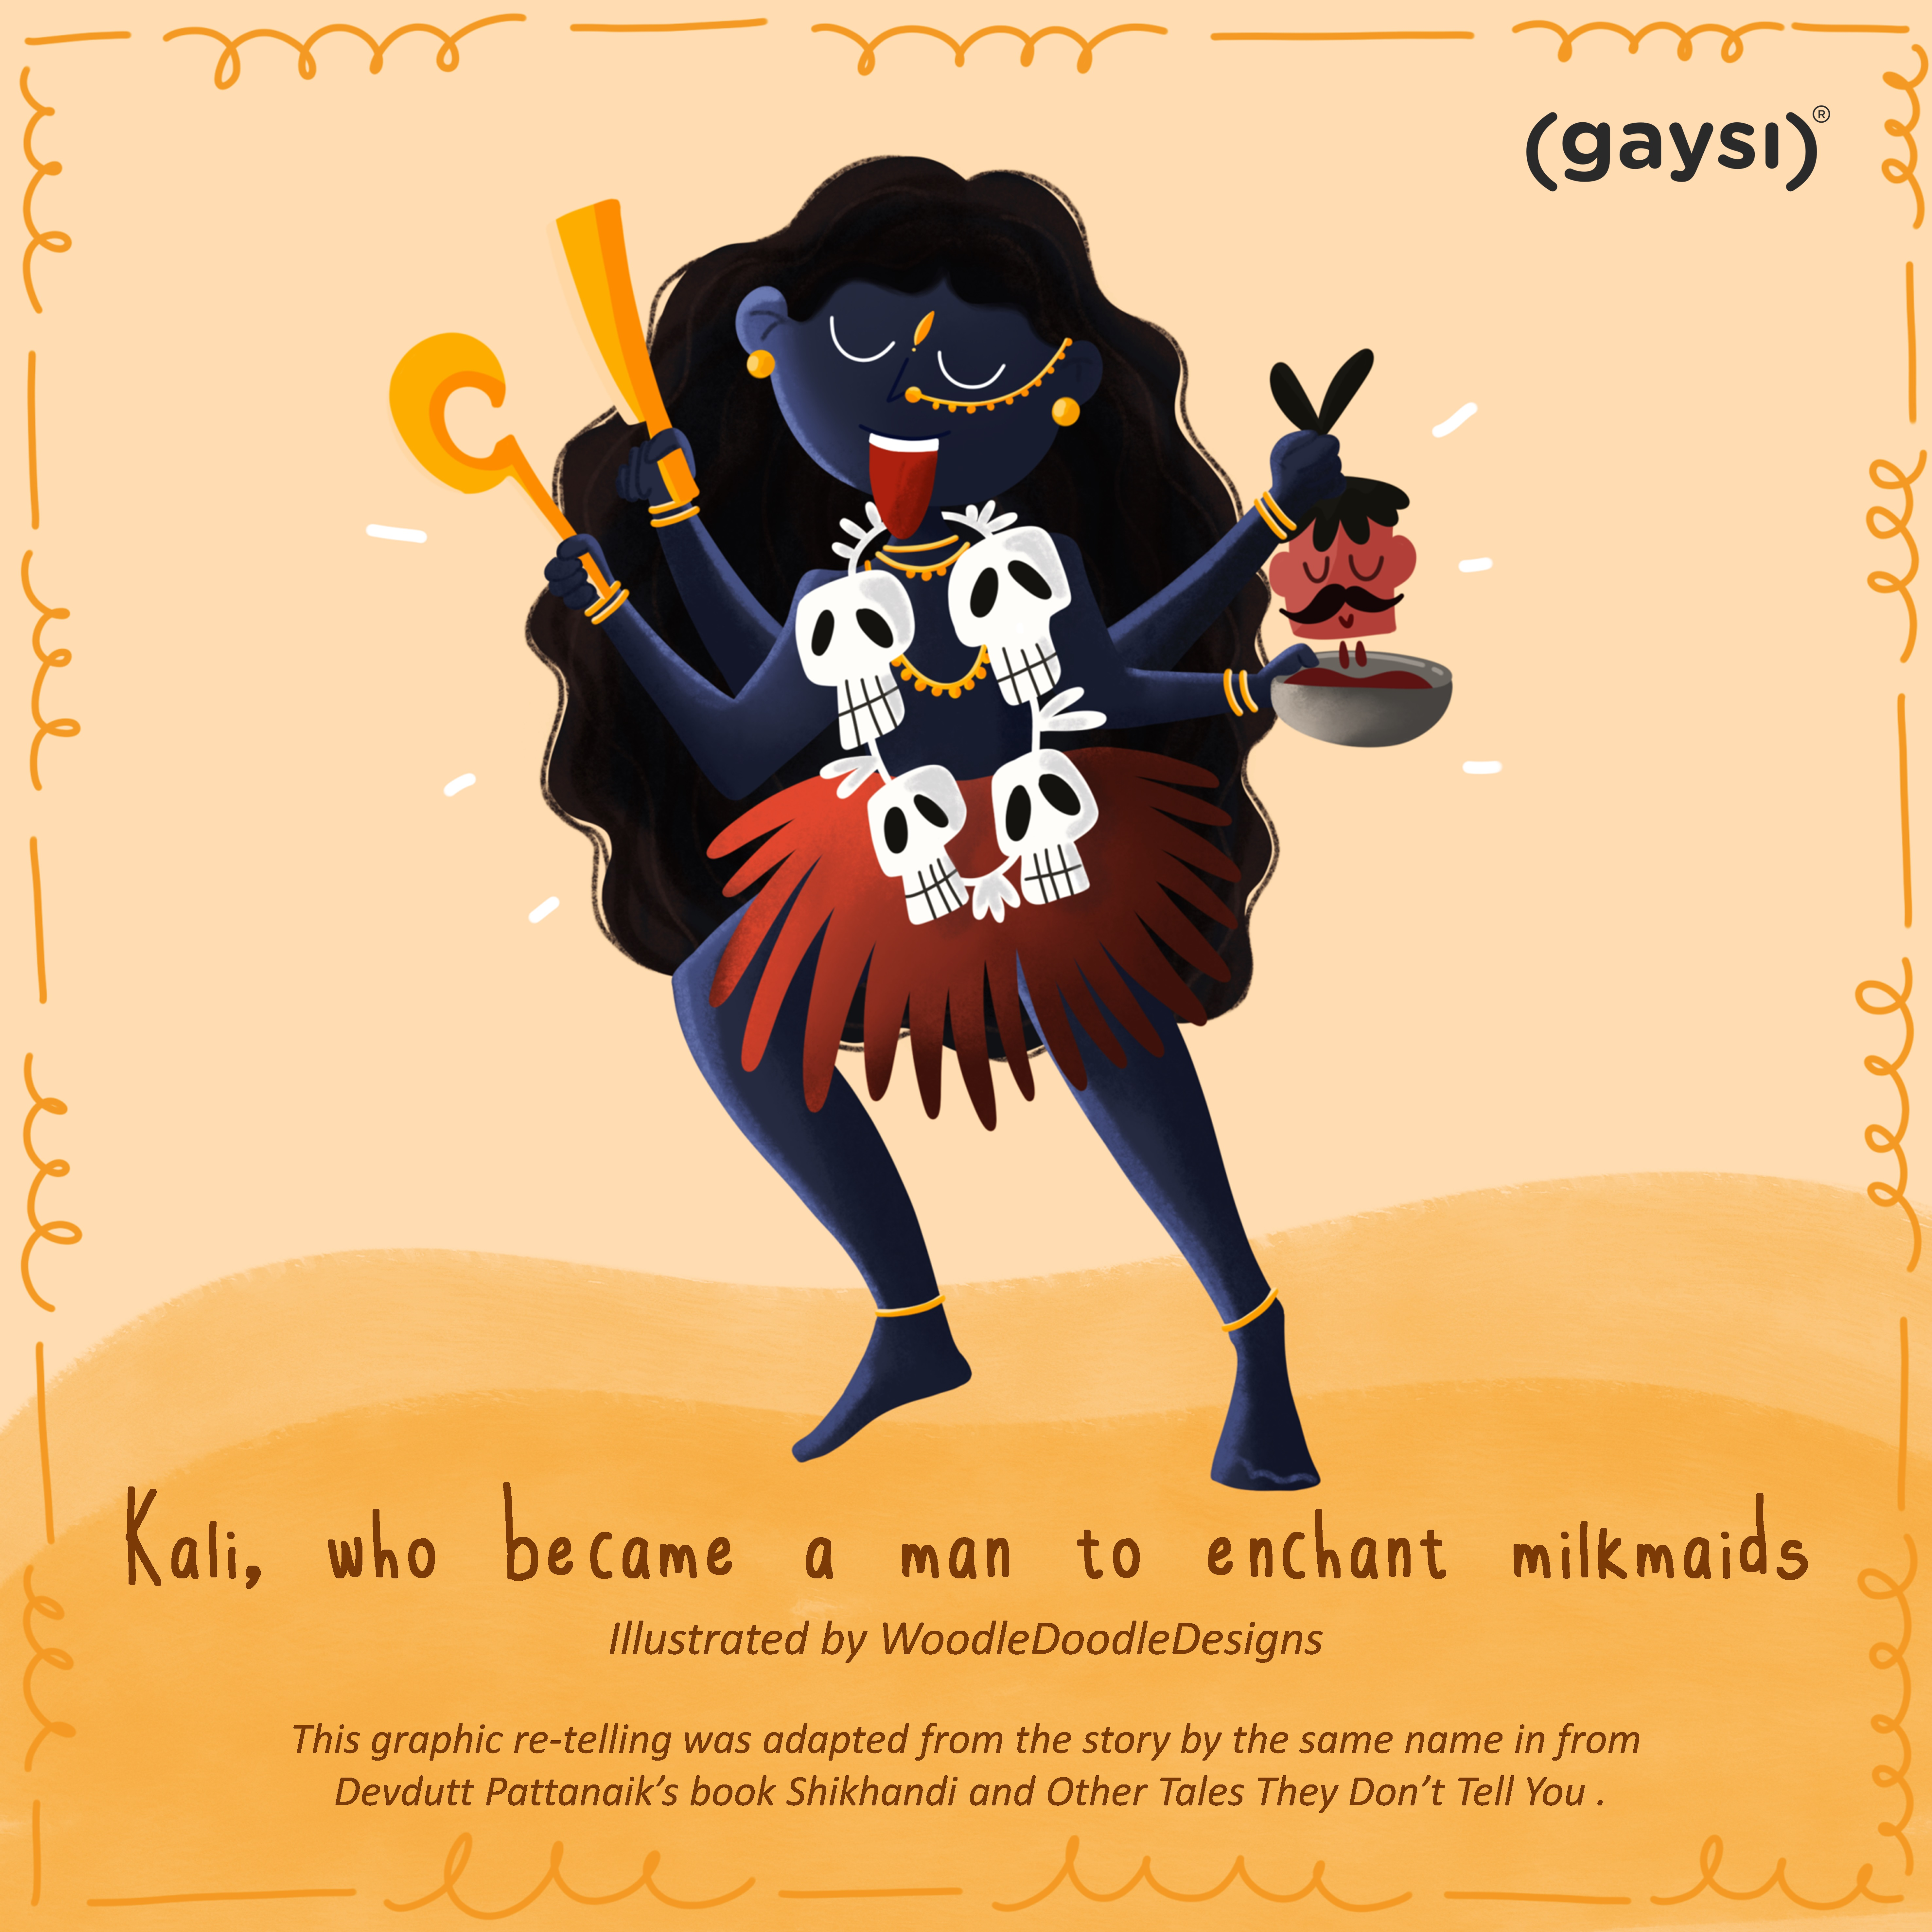 Queer Mythology: Kali, Who Became A Man To Enchant Milkmaids